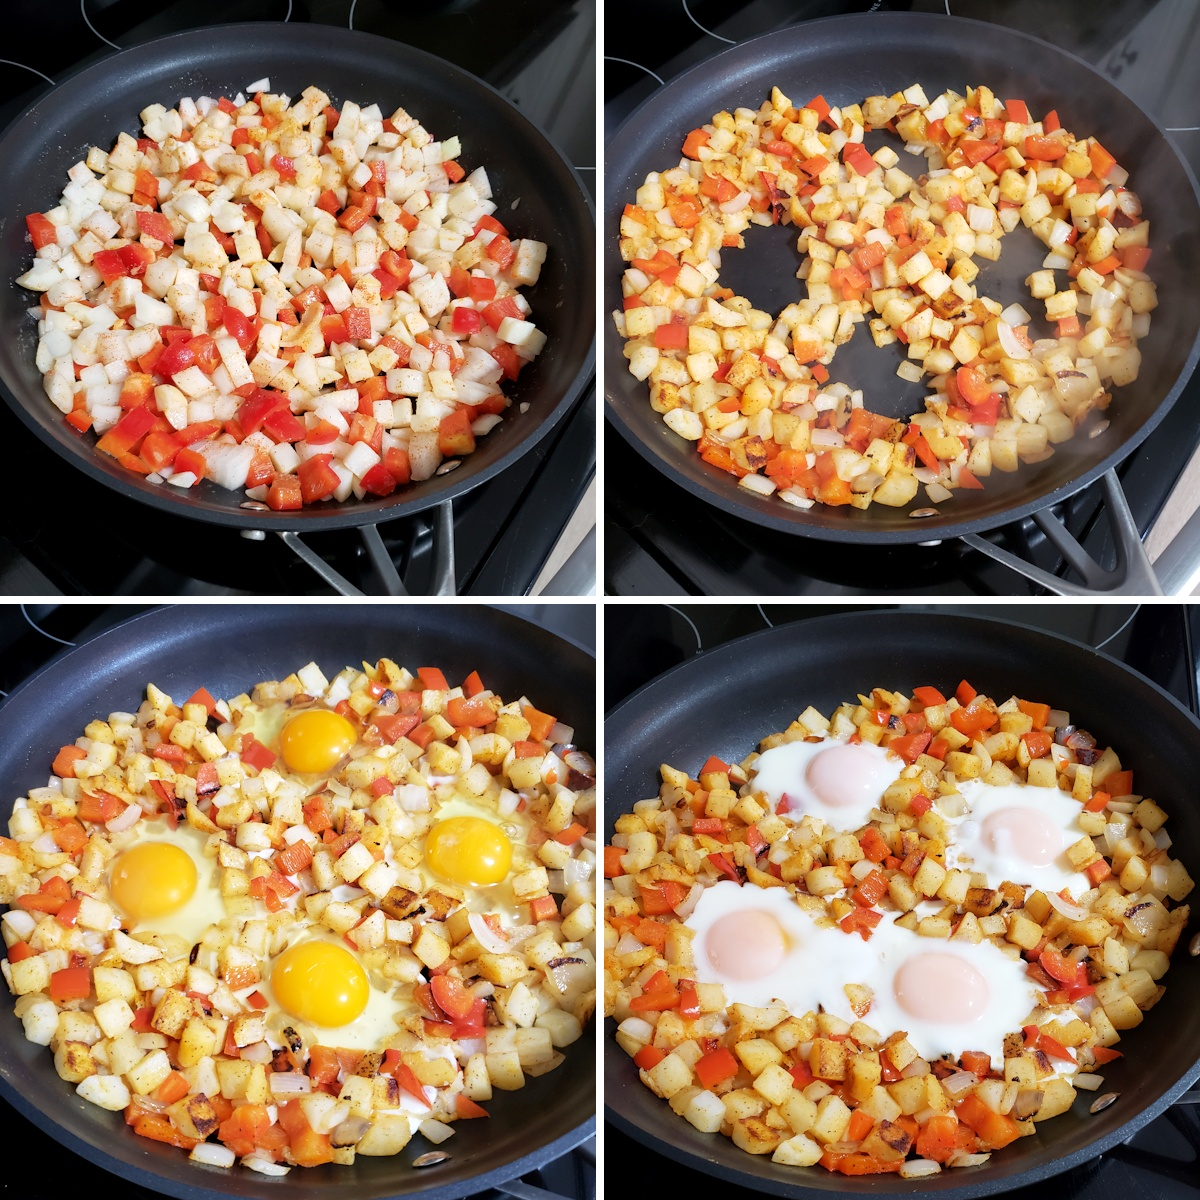 Cooking hash browns and eggs in a nonstick skillet.